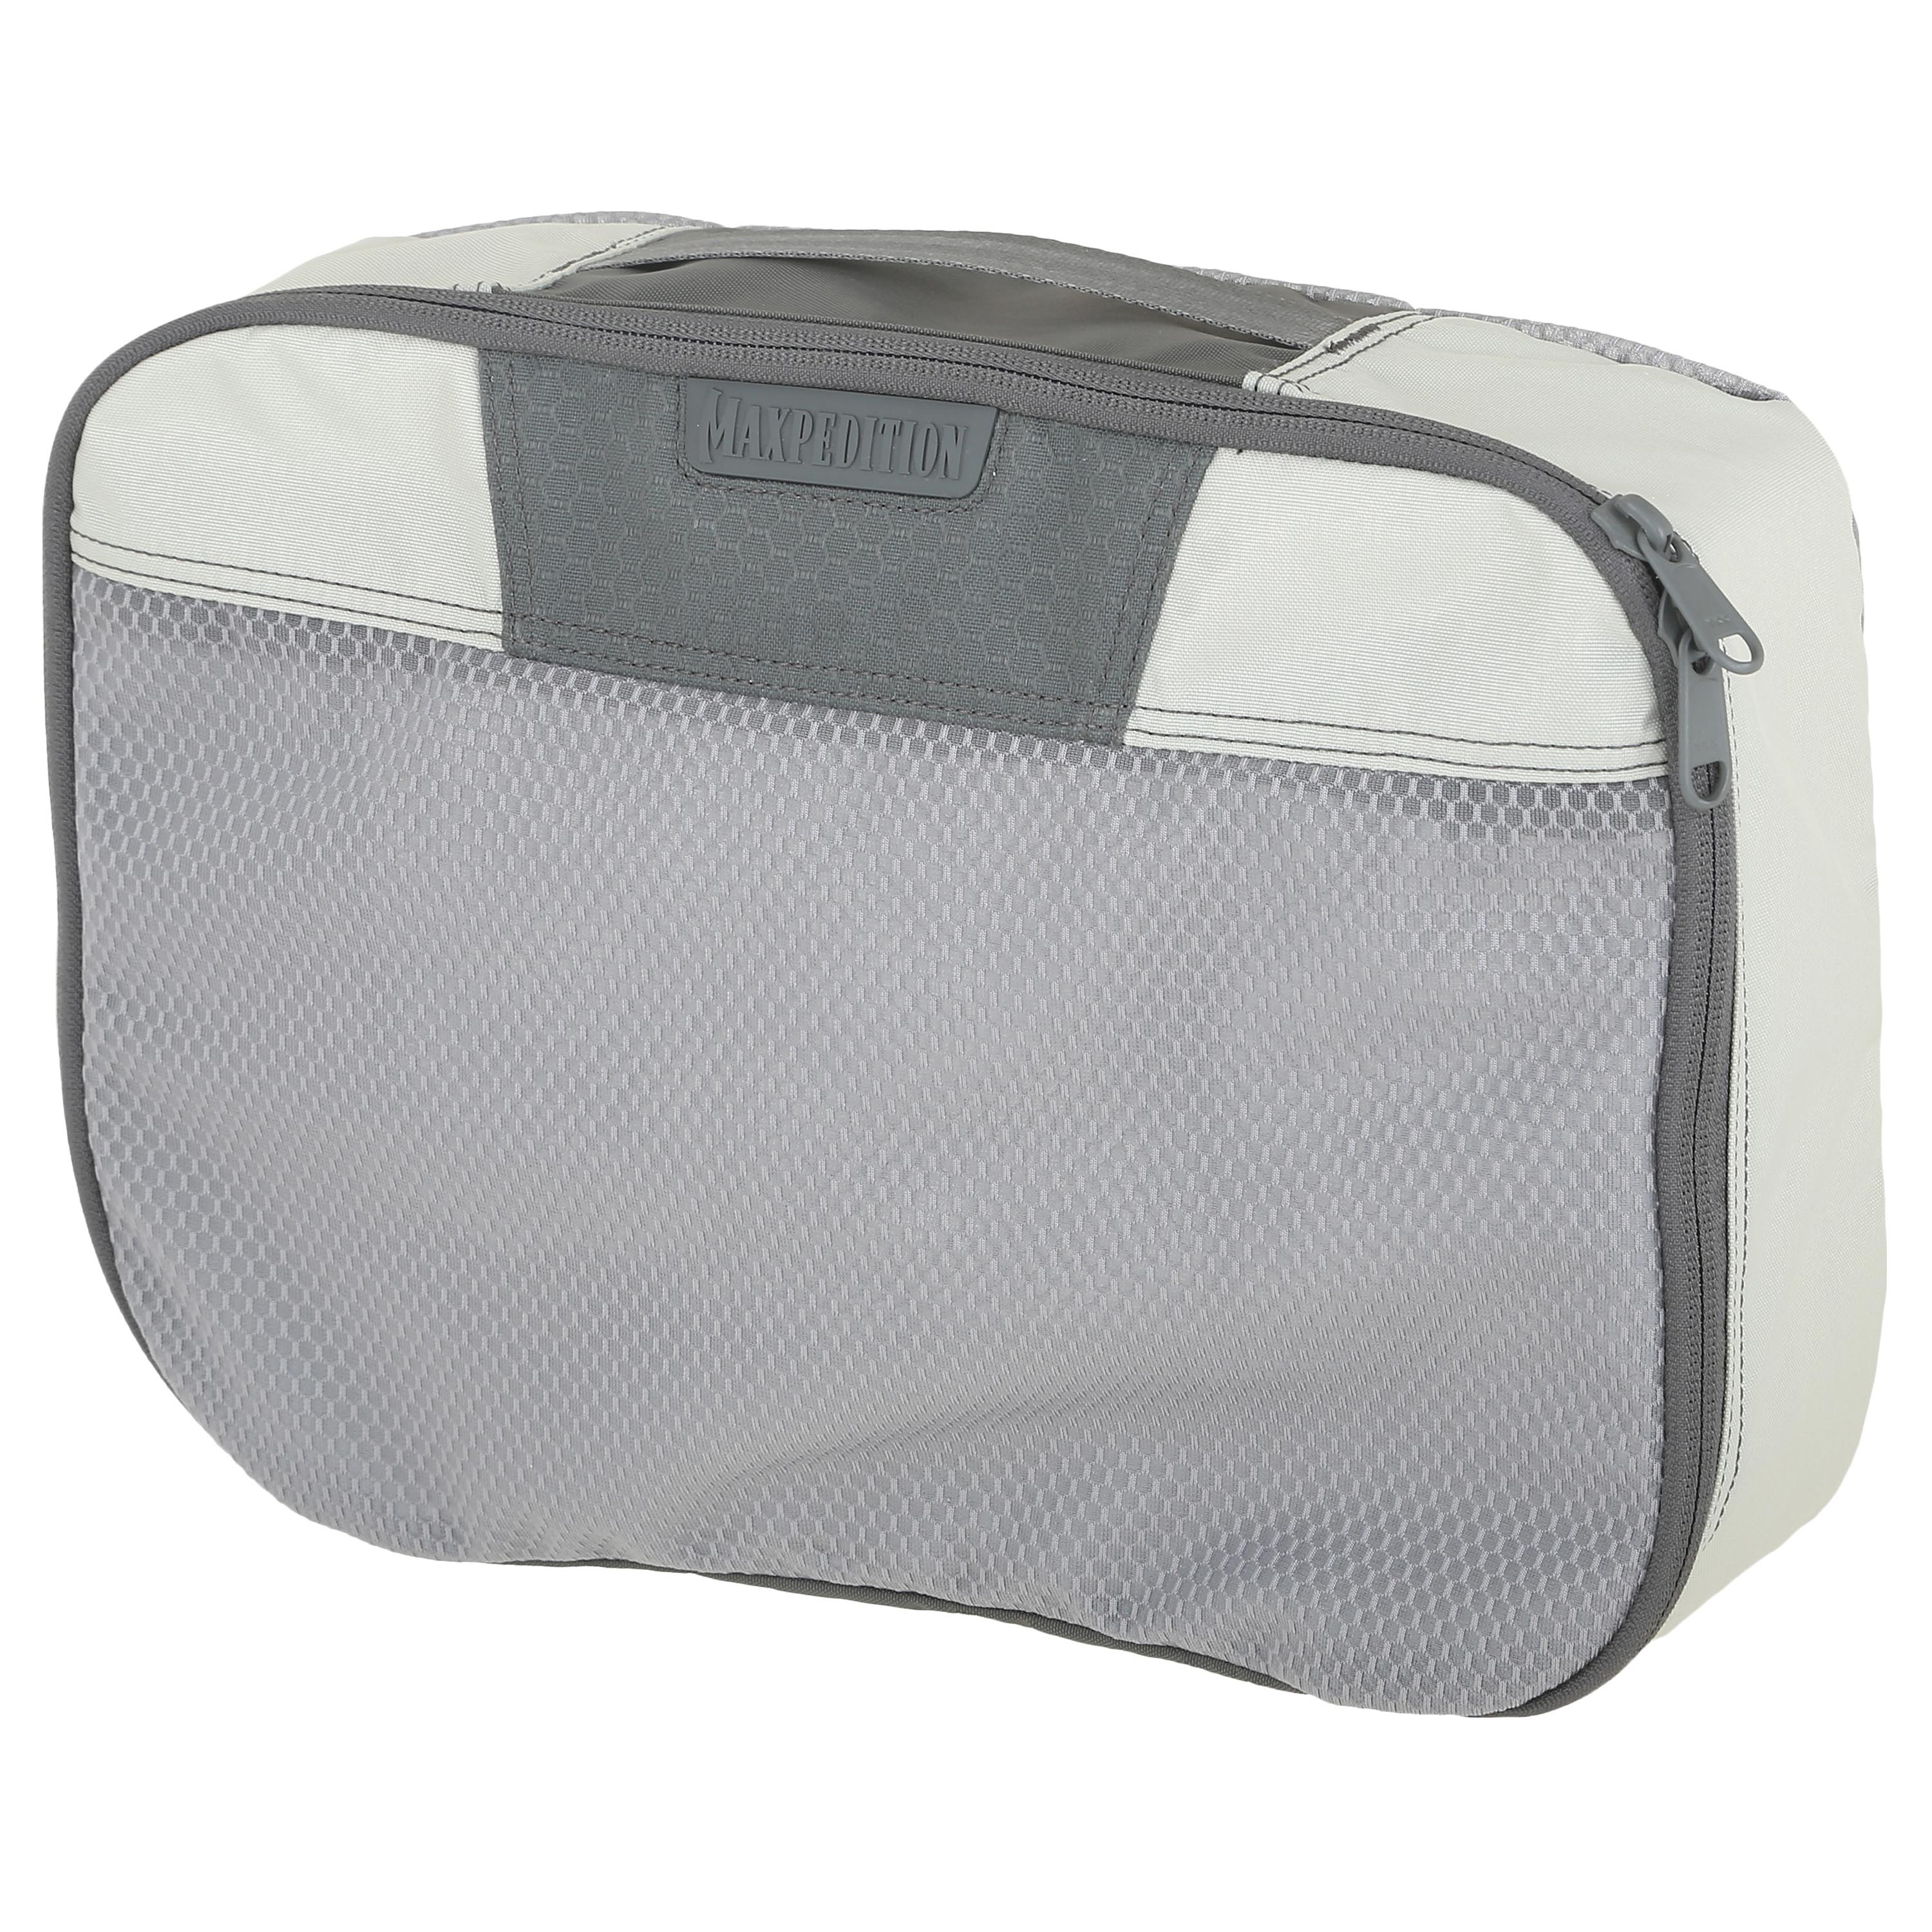 Maxpedition Packing Cube large grau